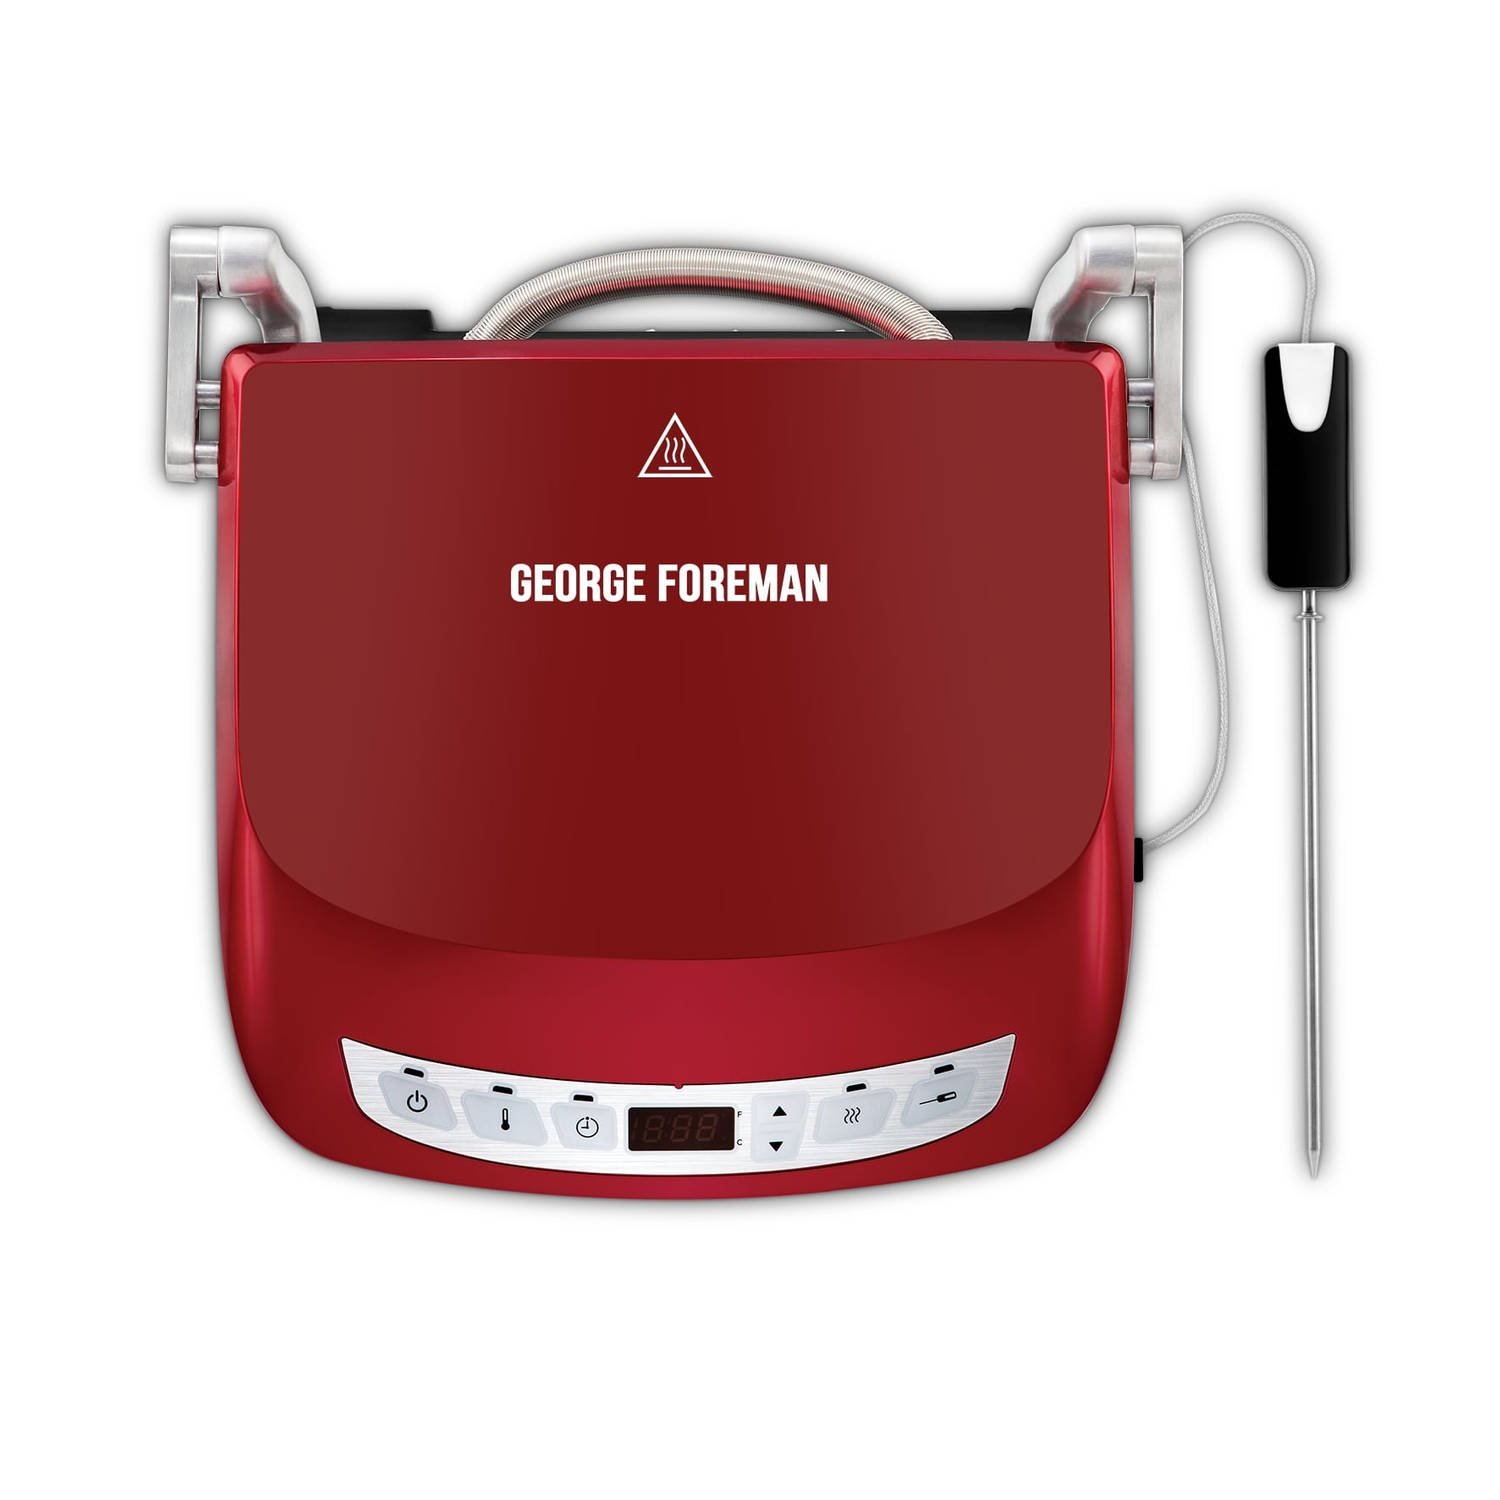 George Foreman contactgrill Evolve Precision